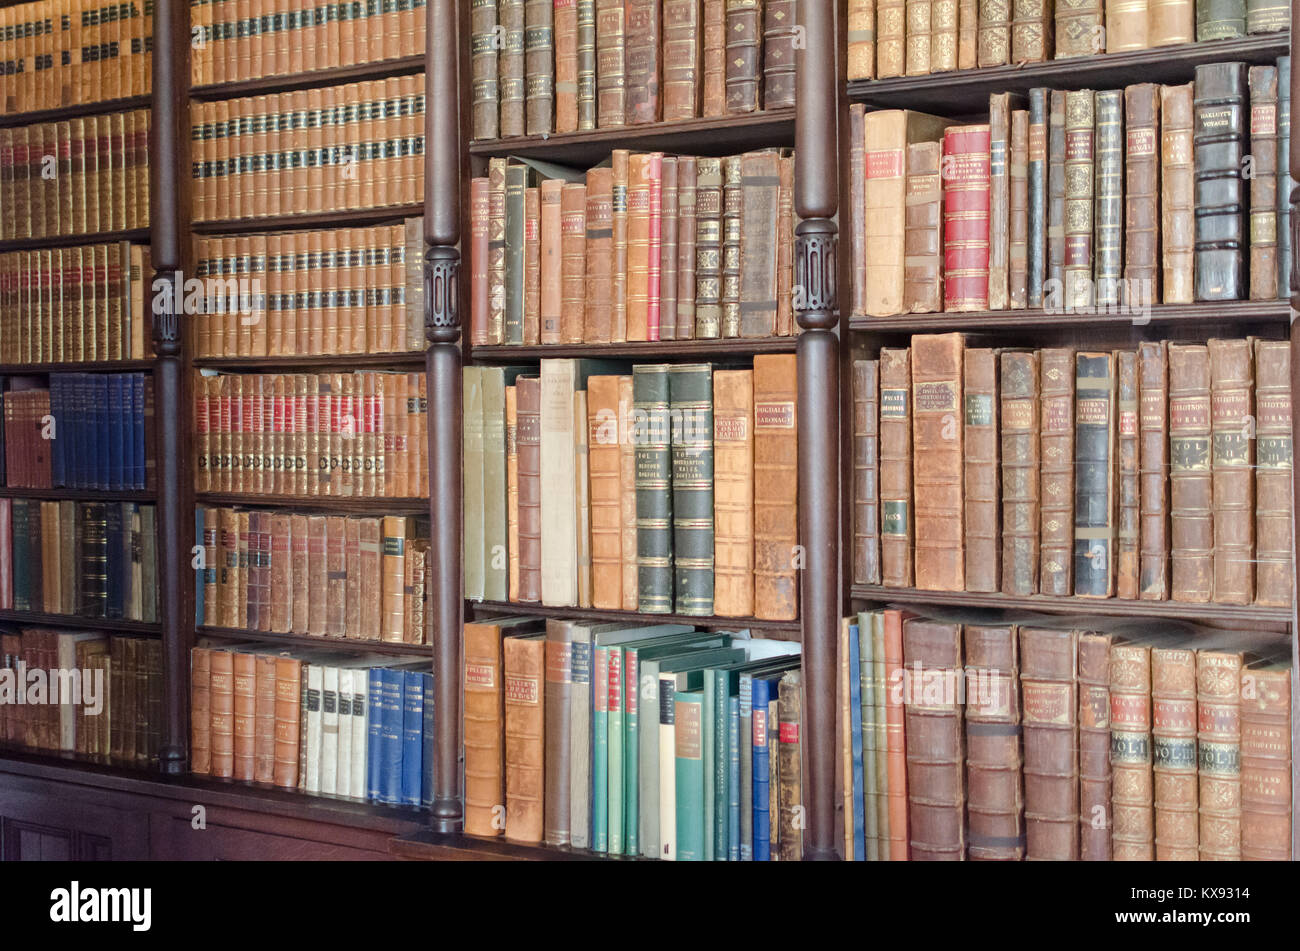 If knowledge is power, then these books are a historical treasure trove... Stock Photo